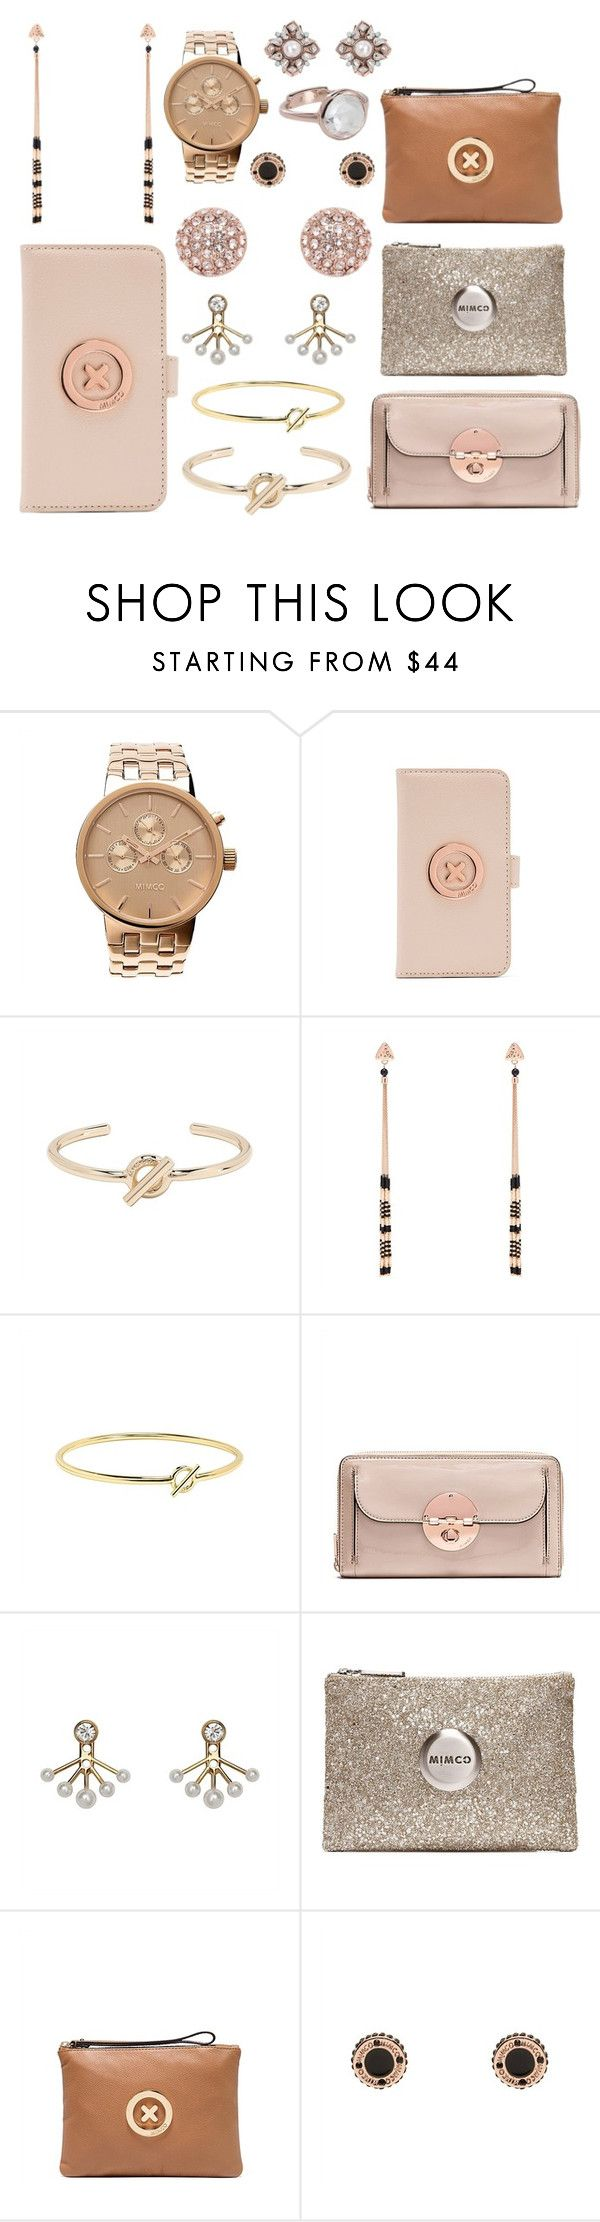 """""""Featured Brand: Mimco"""" by stephanie-rozek-paris ❤ liked on Polyvore featuring Mimco"""